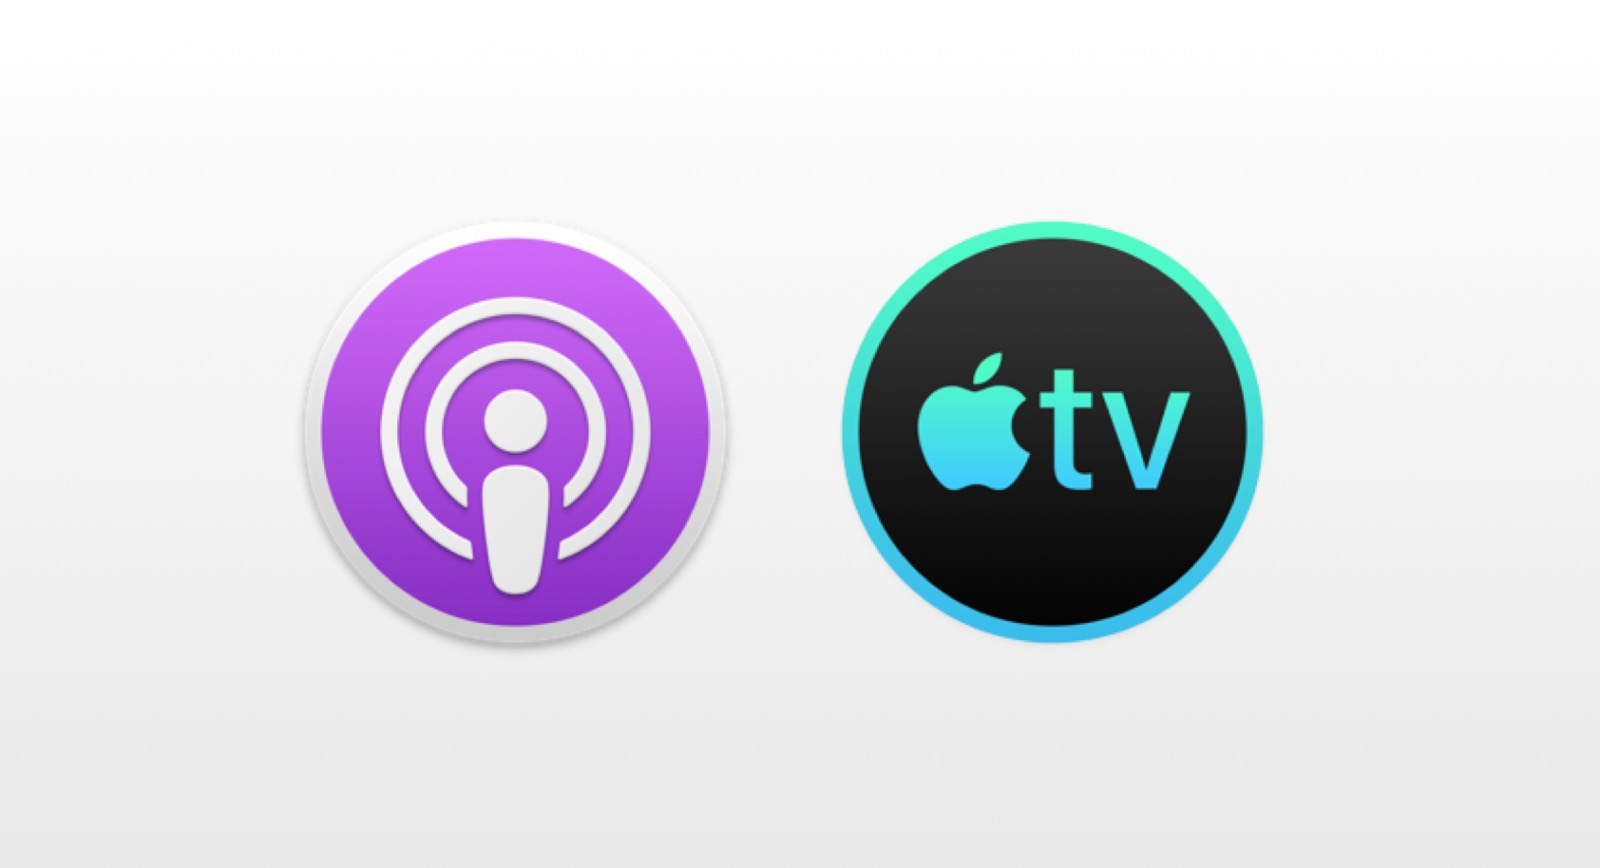 New-Podcasts-and-AppleTV-App-Icons-9to5mac.jpg